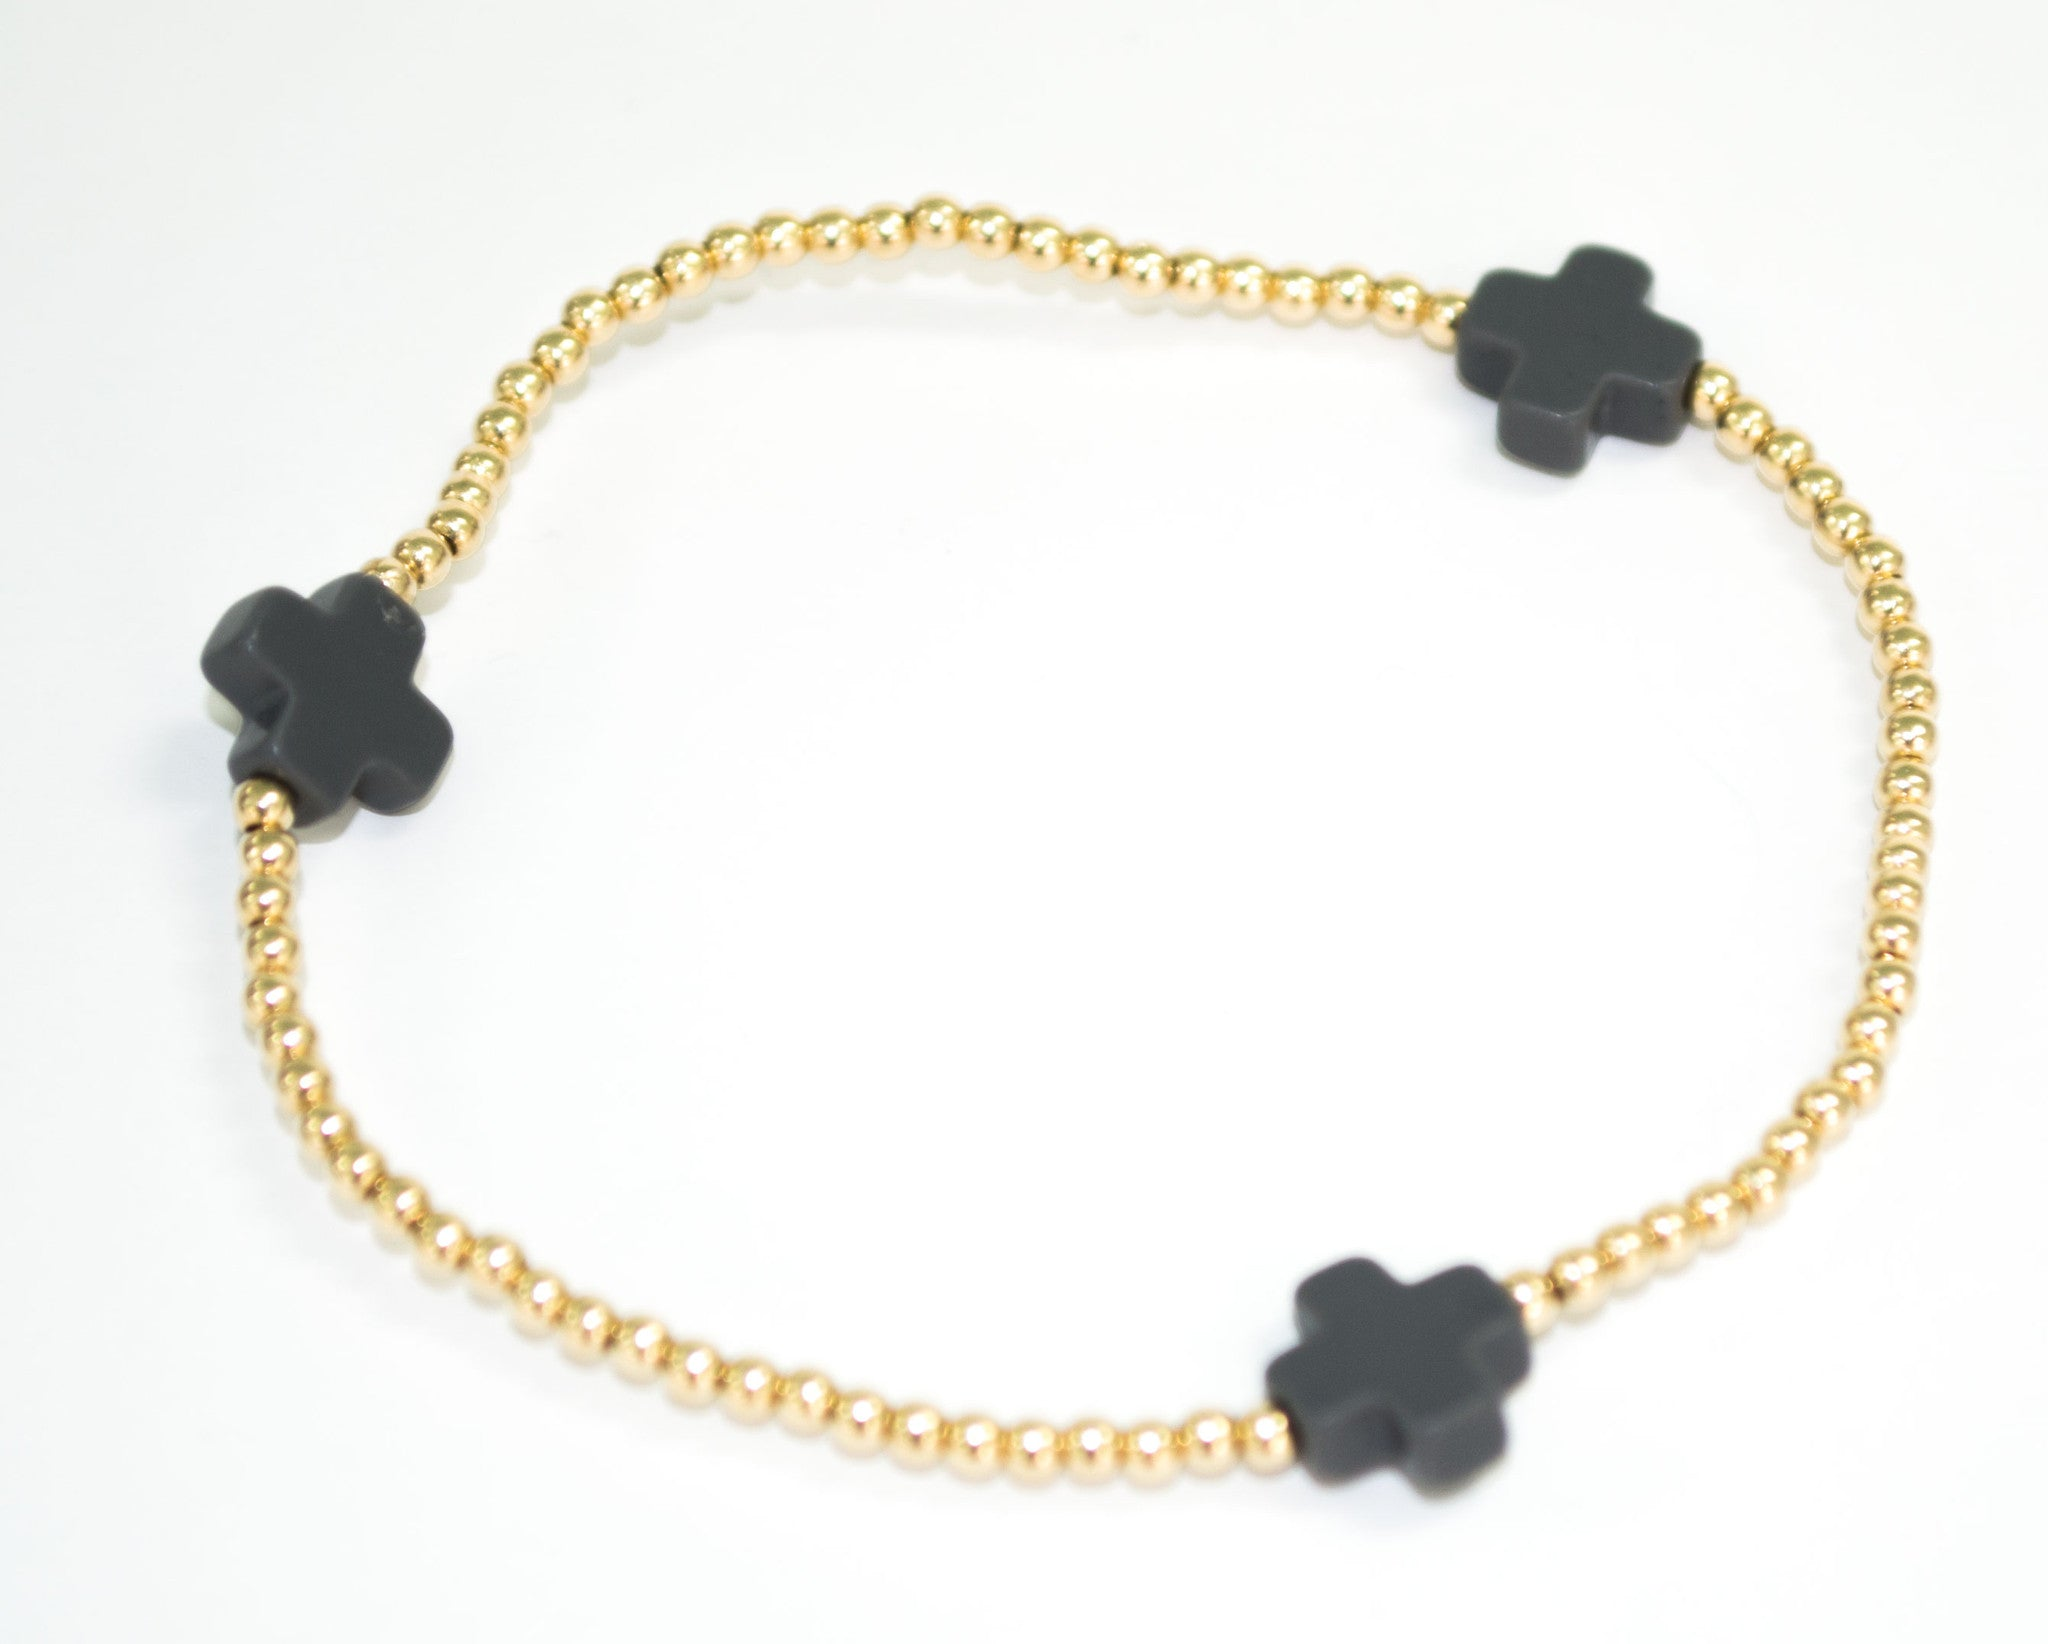 Signature Cross Bracelet in Charcoal - Noa & Vivi Kids Apparel